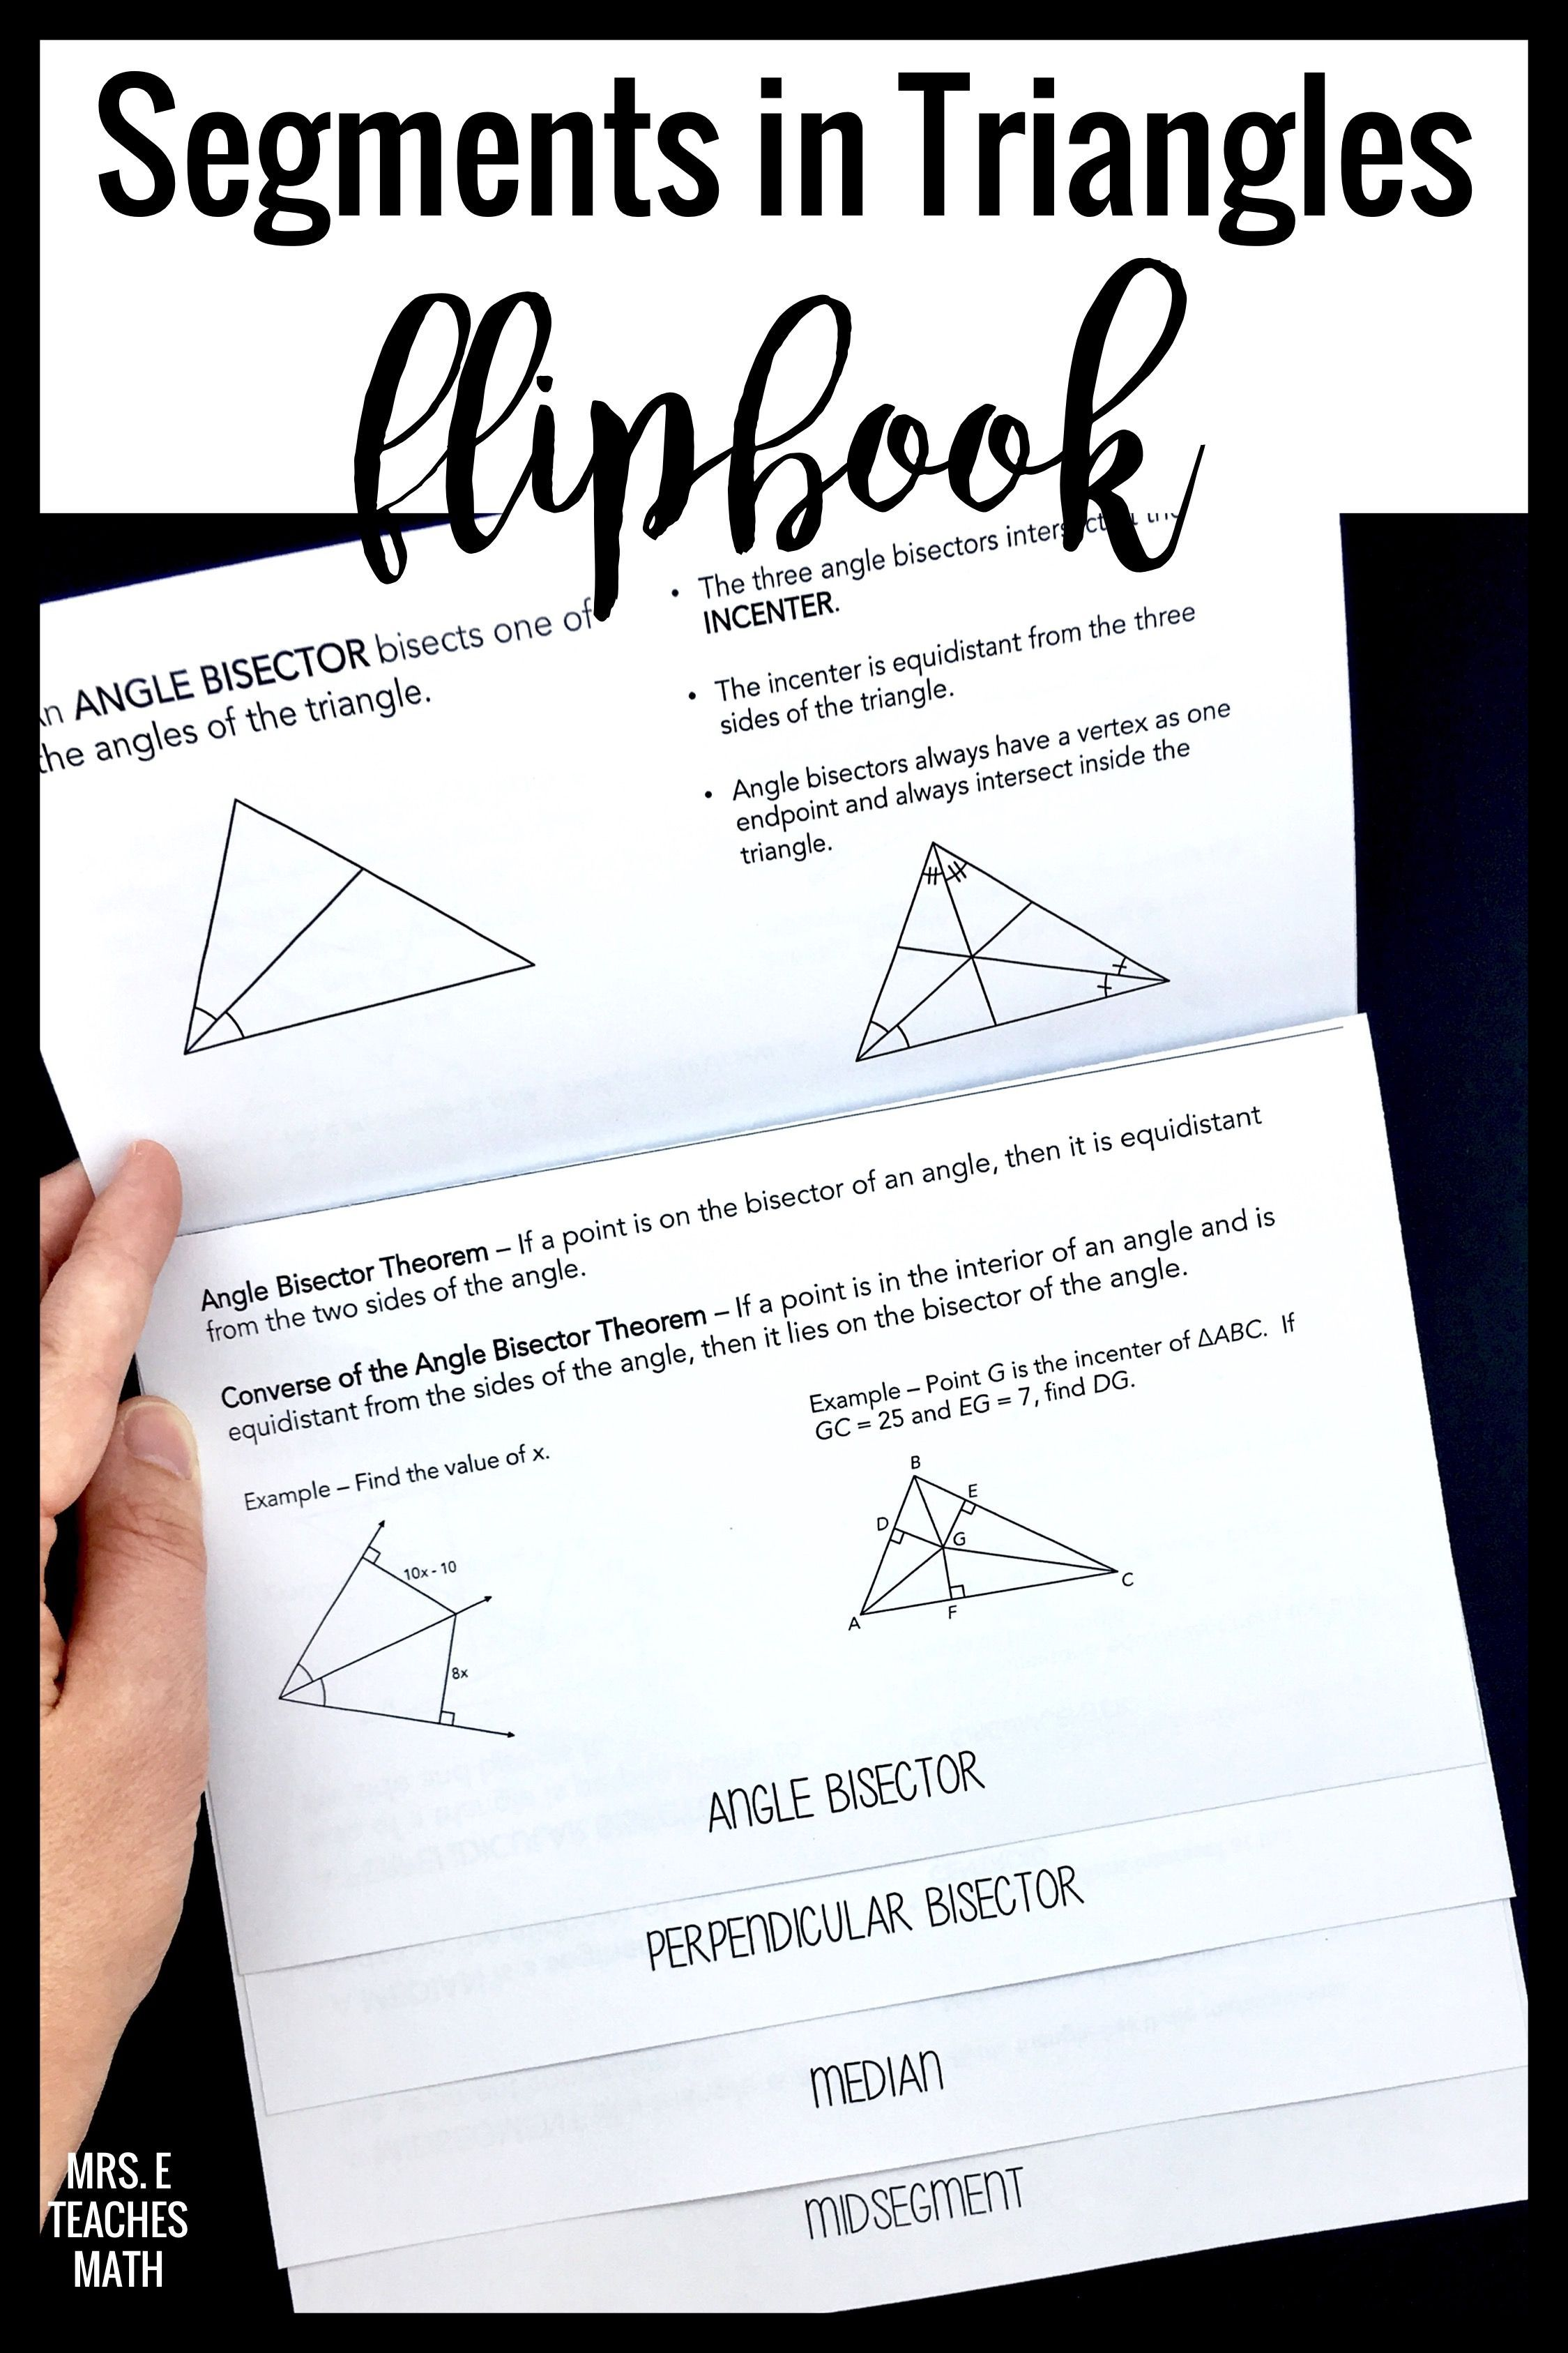 Segments In Triangles Flipbook High School Math Lesson Plans Geometry Notes Geometry Lessons